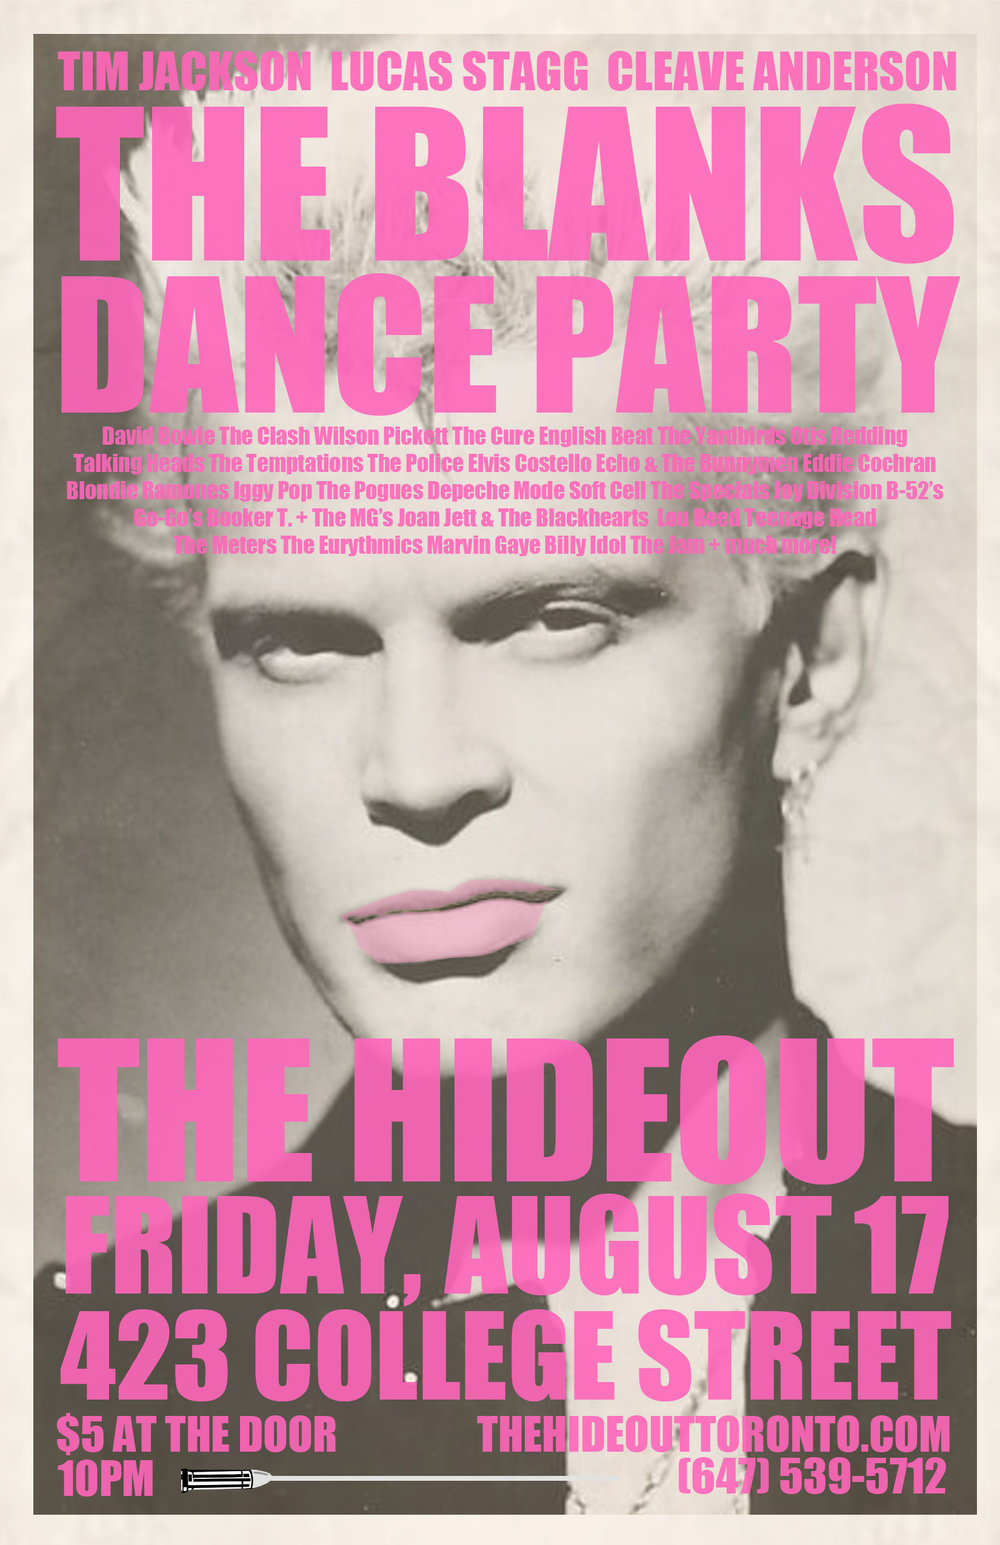 David Bowie The Clash Wilson Pickett The Cure English Beat Otis Redding Talking Heads Iggy Pop Booker T. & The MGs Blondie Billy Idol Marvin Gaye The Meters Ramones B-52's Eddie Cochran Eurythmics The Police The Temptations Depeche Mode Joan Jett & The Blackhearts Devo+ way more!! $5 at the door.